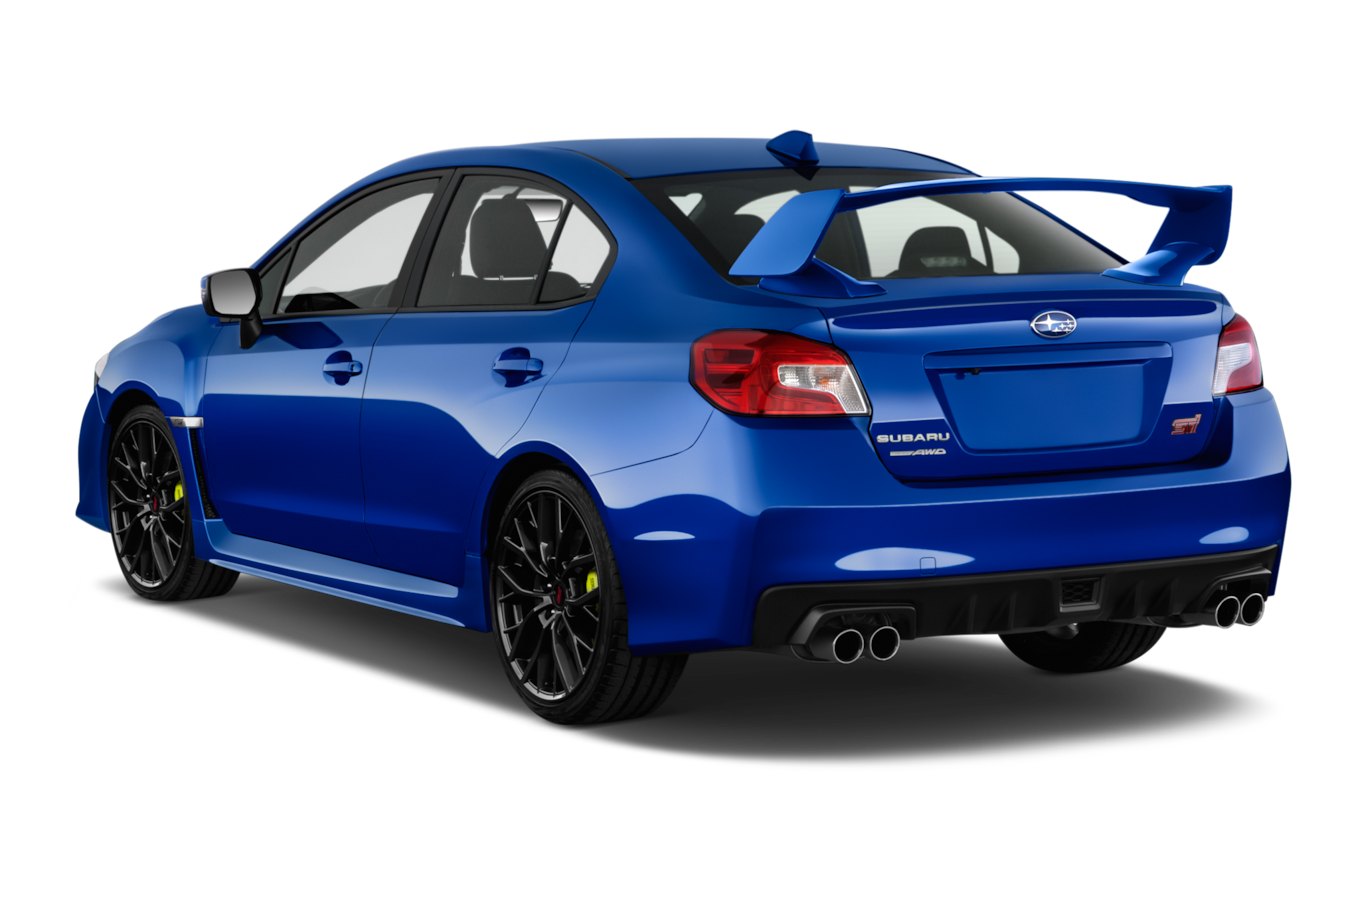 68 Great Subaru Impreza Sti 2019 Rumors with Subaru Impreza Sti 2019